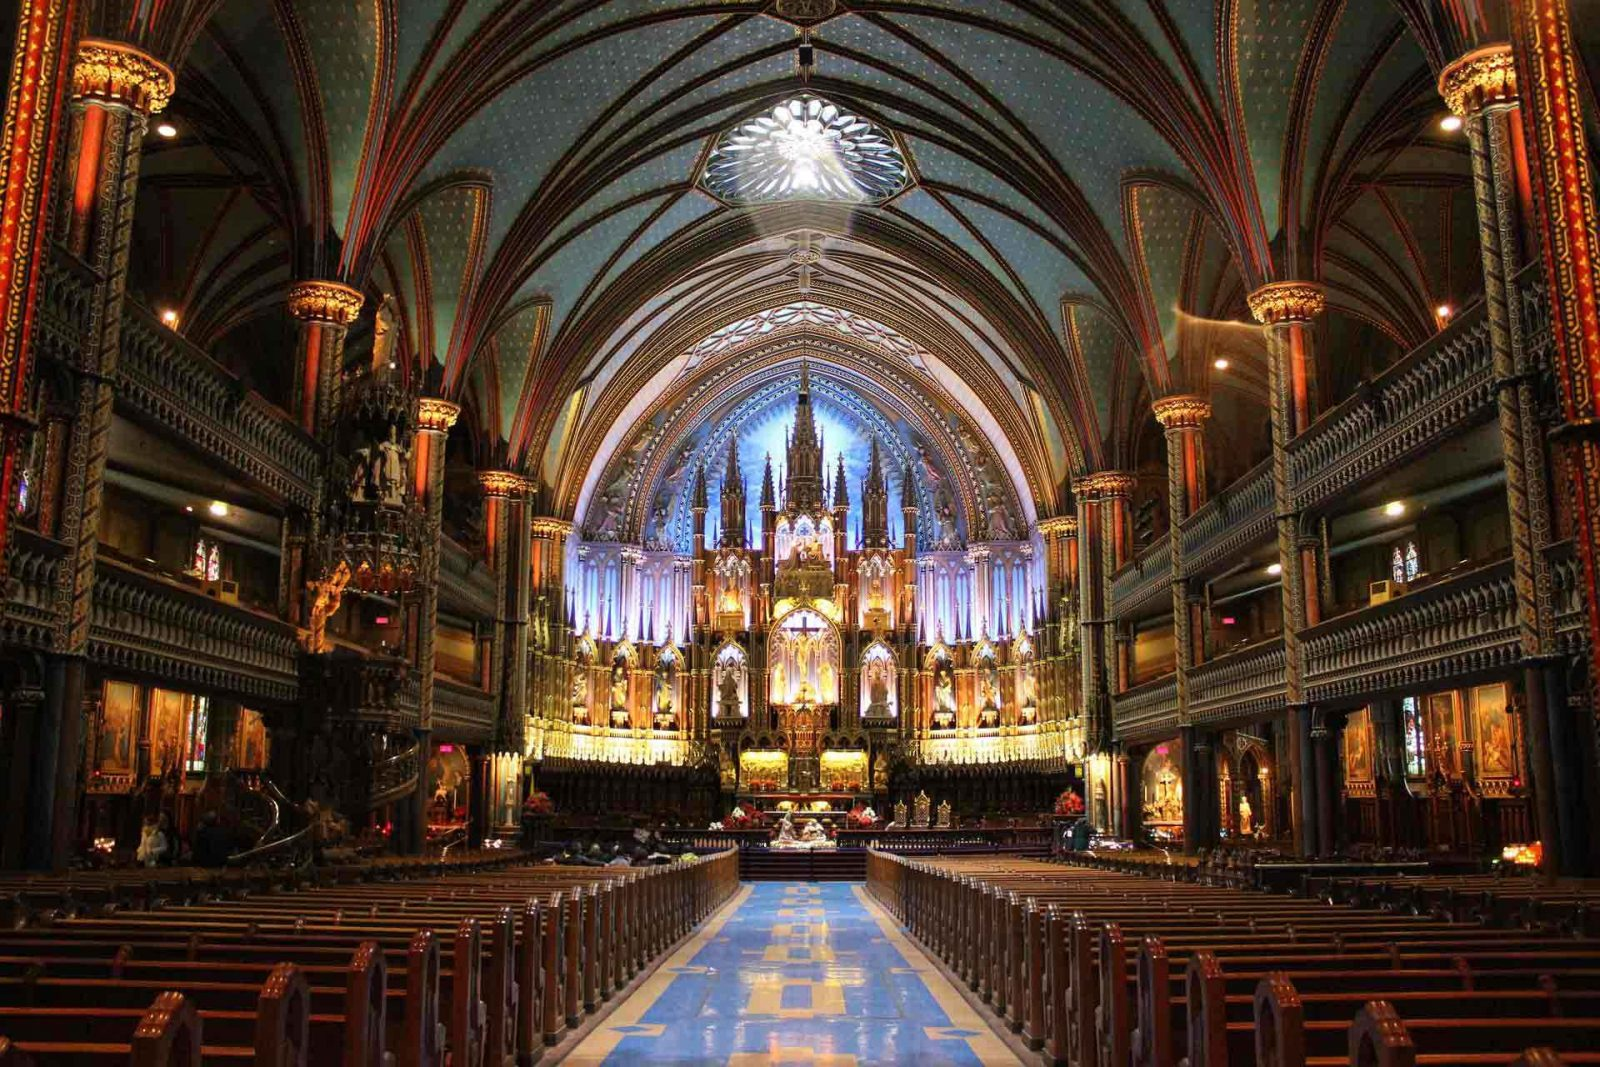 Eight must see sights for kids in Montreal on Falcondale Life blog. Guest post by Samara from TinyFry. Notre Dame Montreal on Creative Commons licence courtesy of Pixabay. There's lots for kids of all ages in Montreal, it's a great family travel destination in Canada.